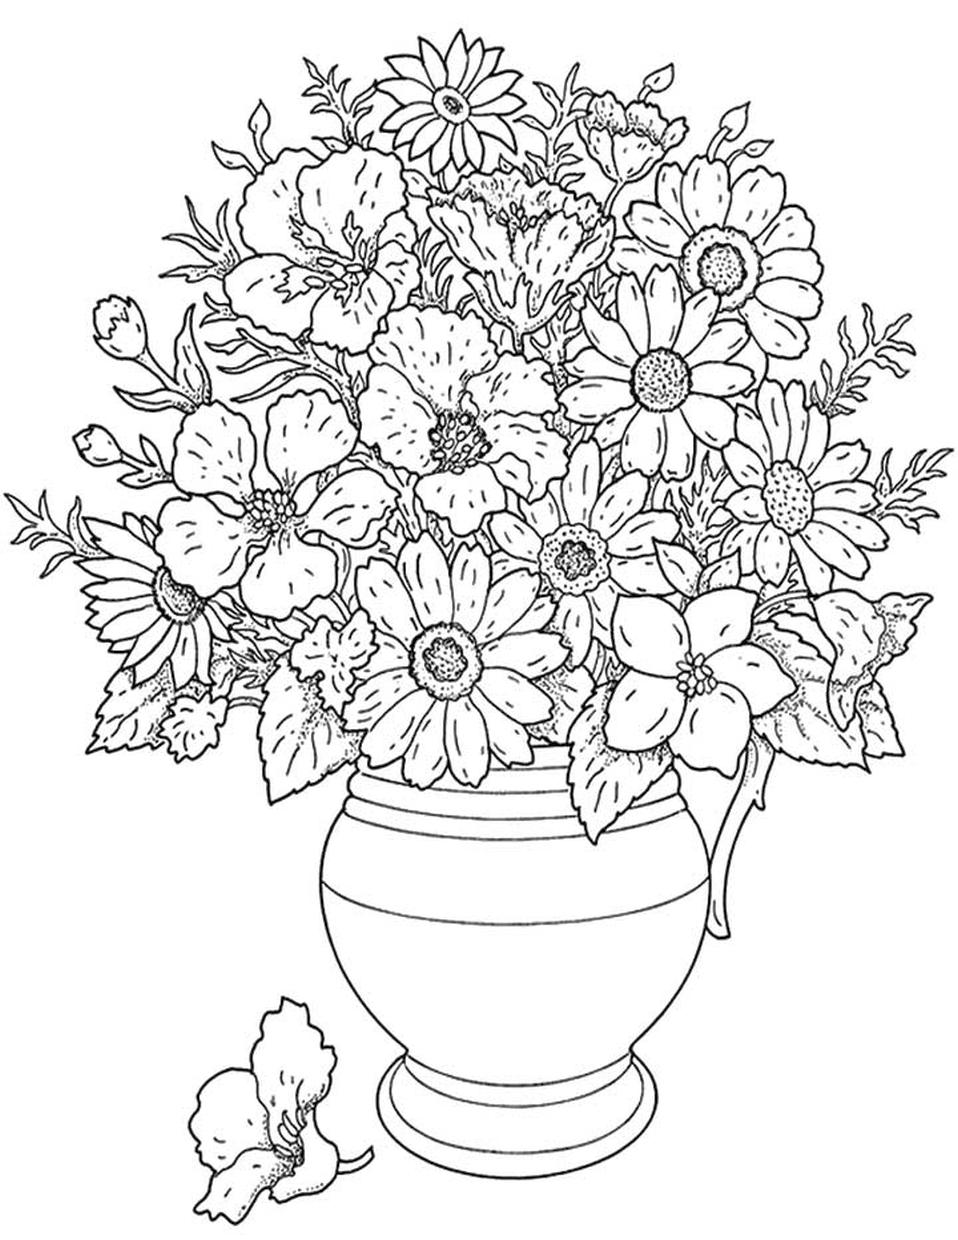 Hard Coloring Pages Printable Free A Pot of Flowers